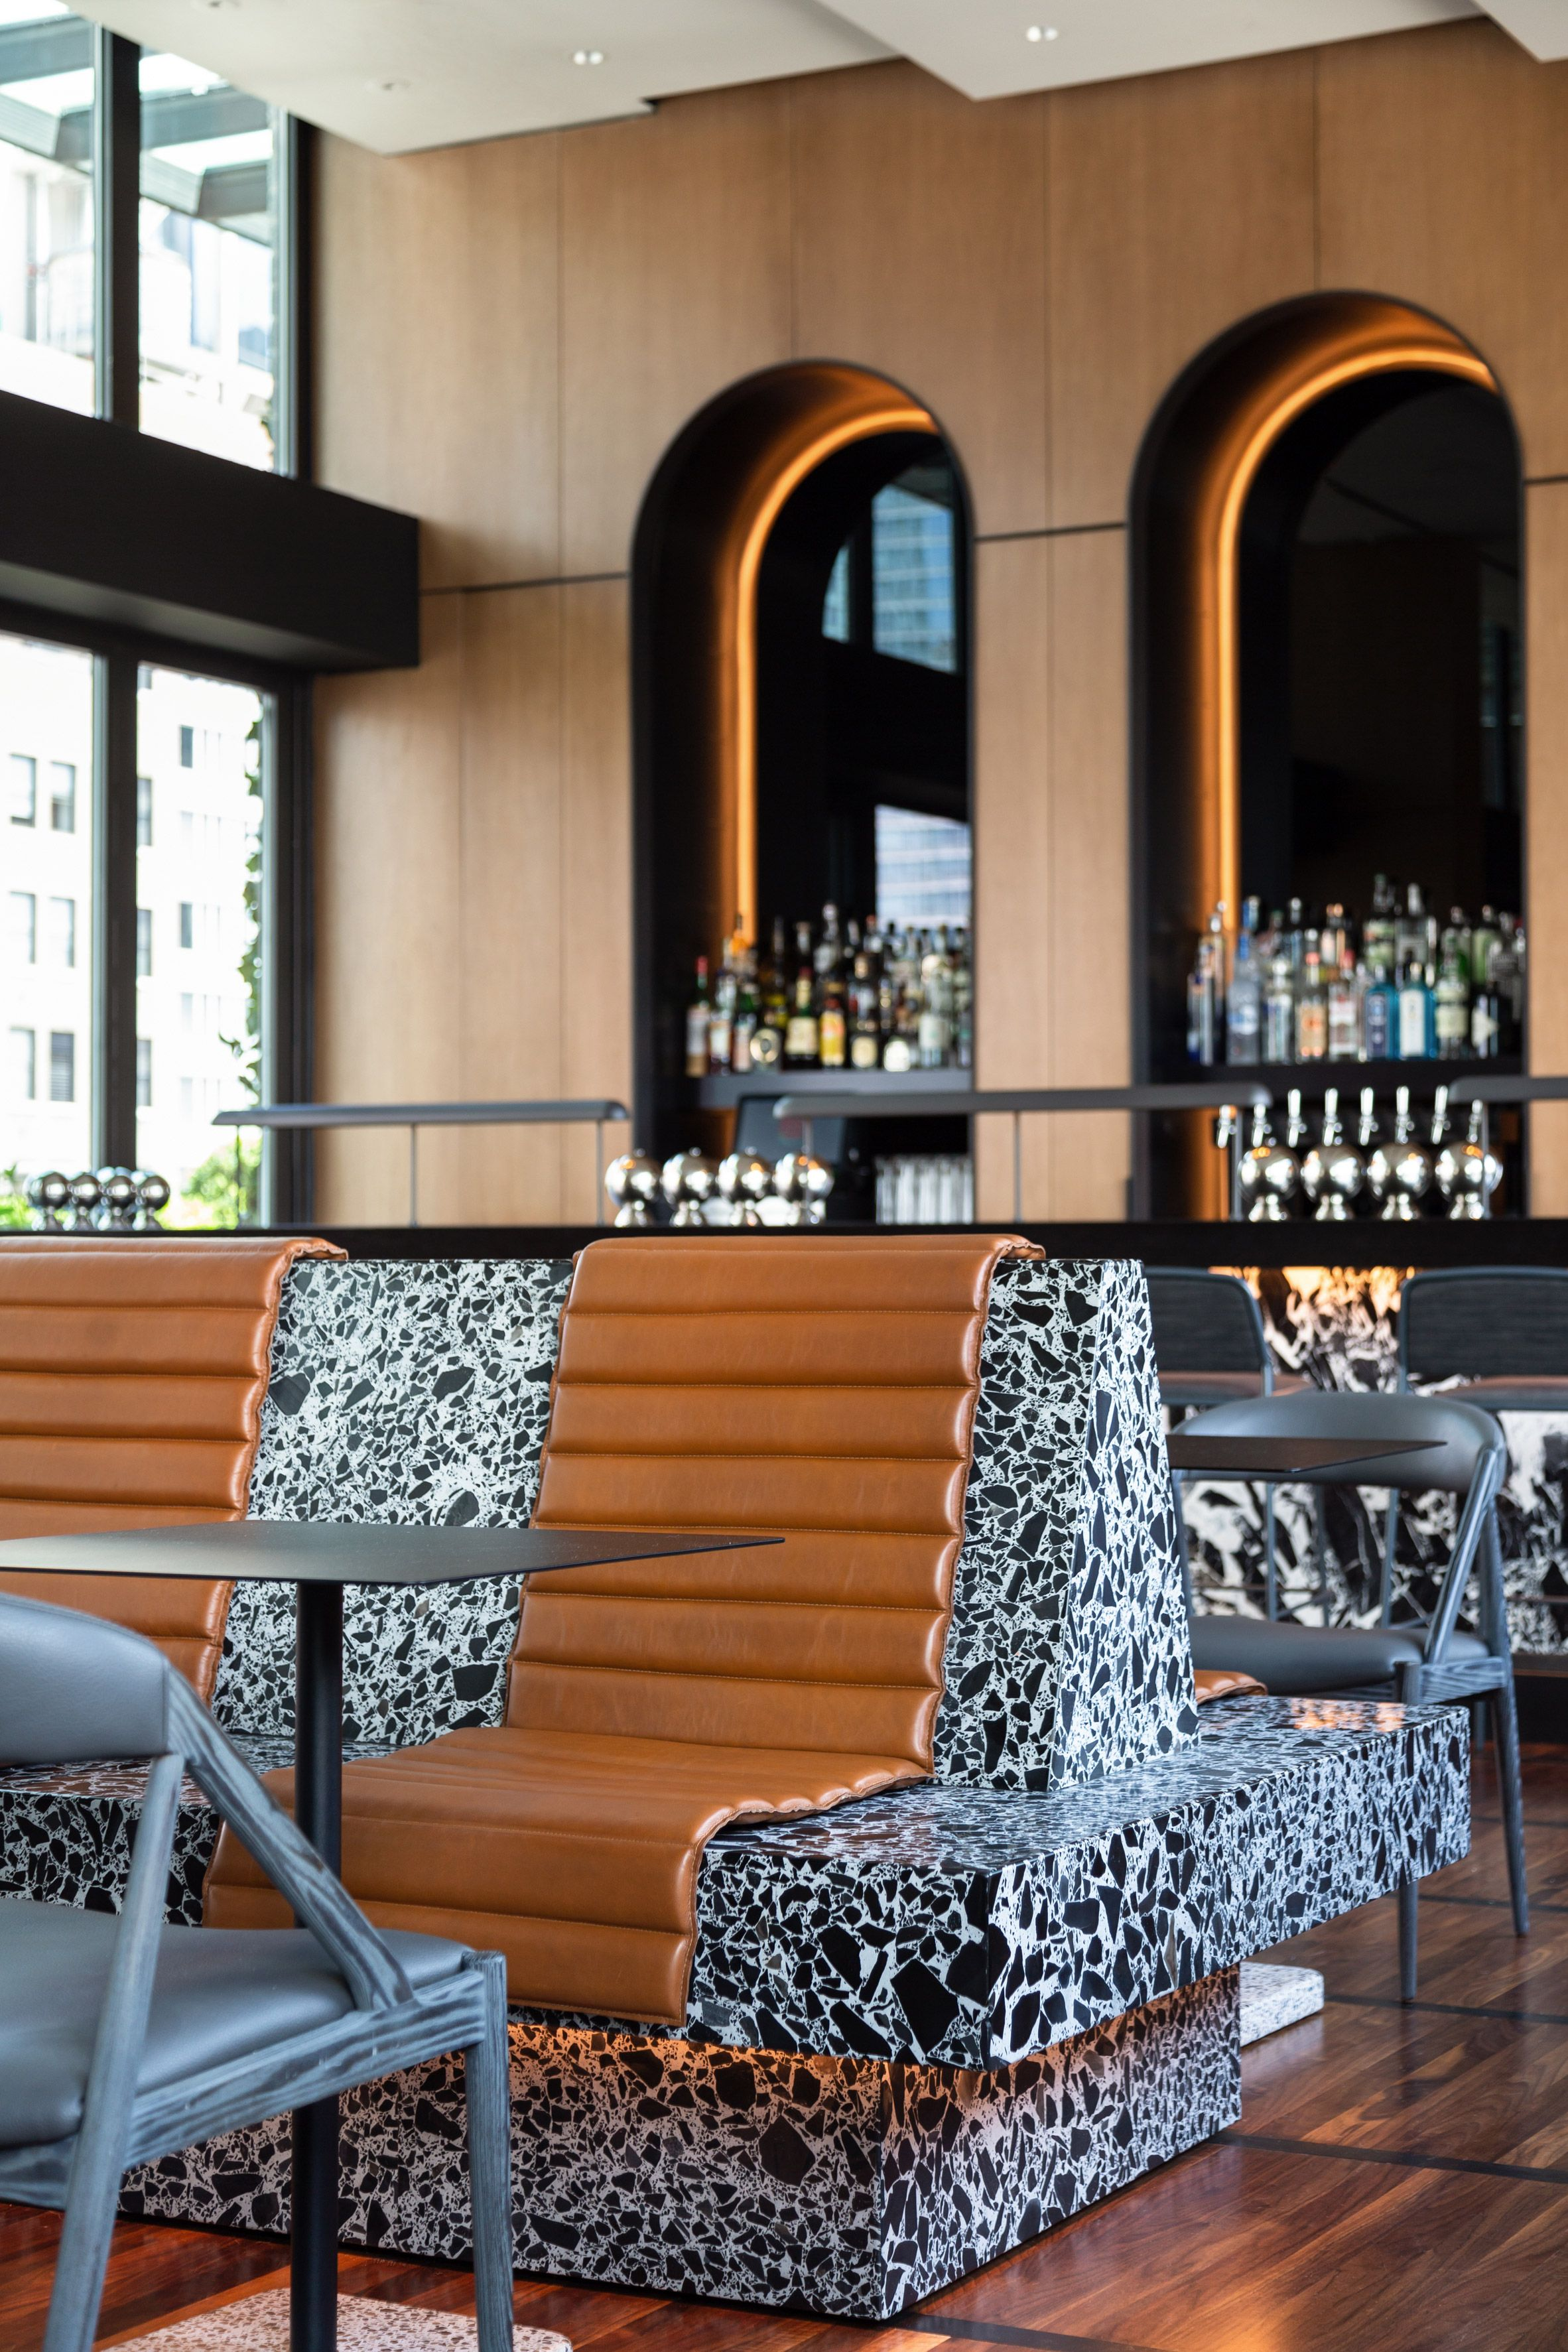 Castell rooftop bar by BHDM offers cosy setting with